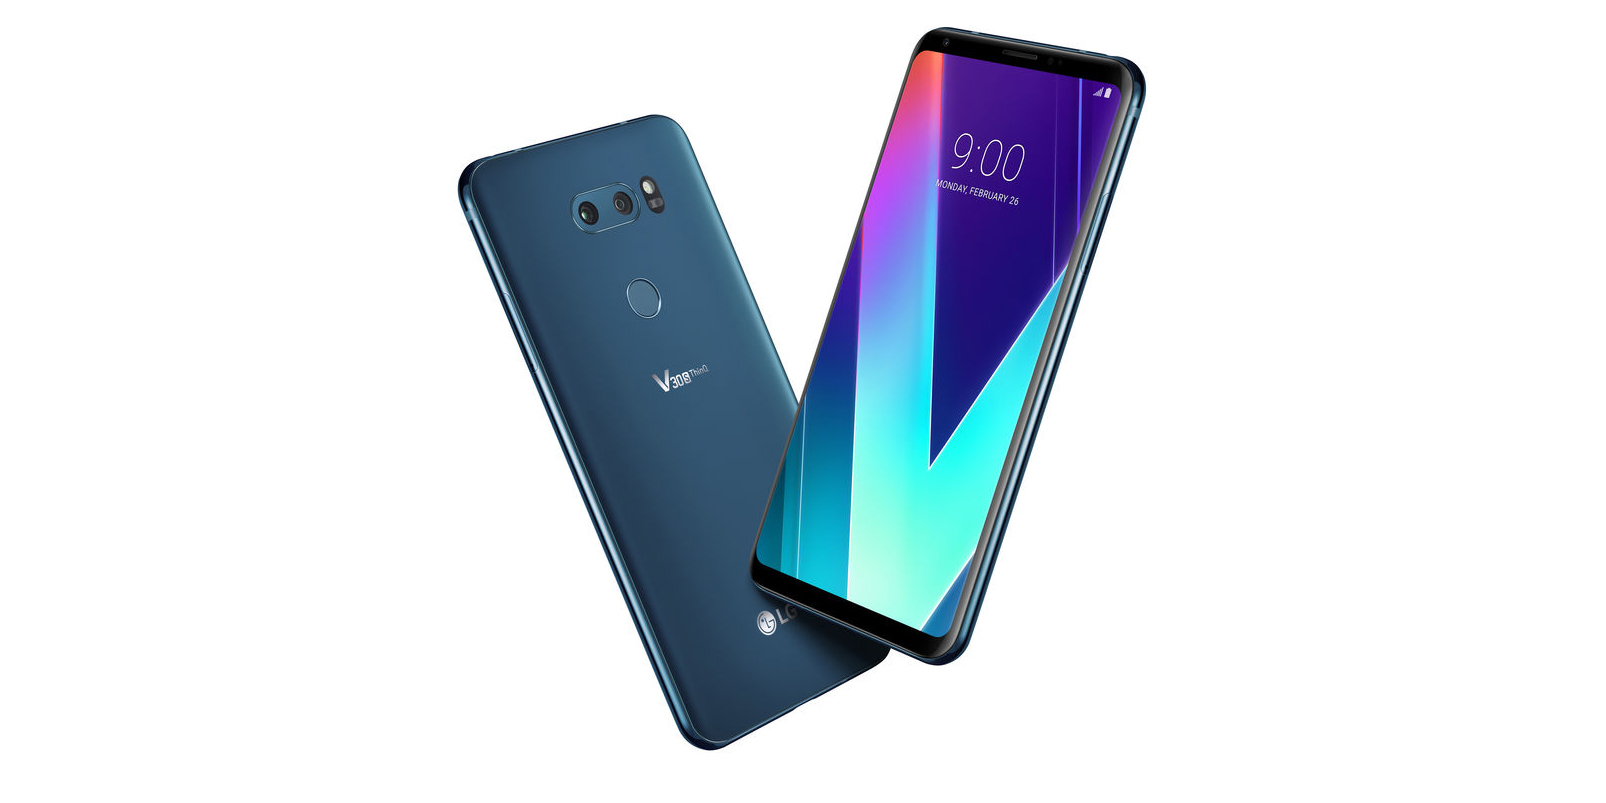 Today only, pick up the new LG V30S 128GB Android Smartphone for $600 (Reg. $930)